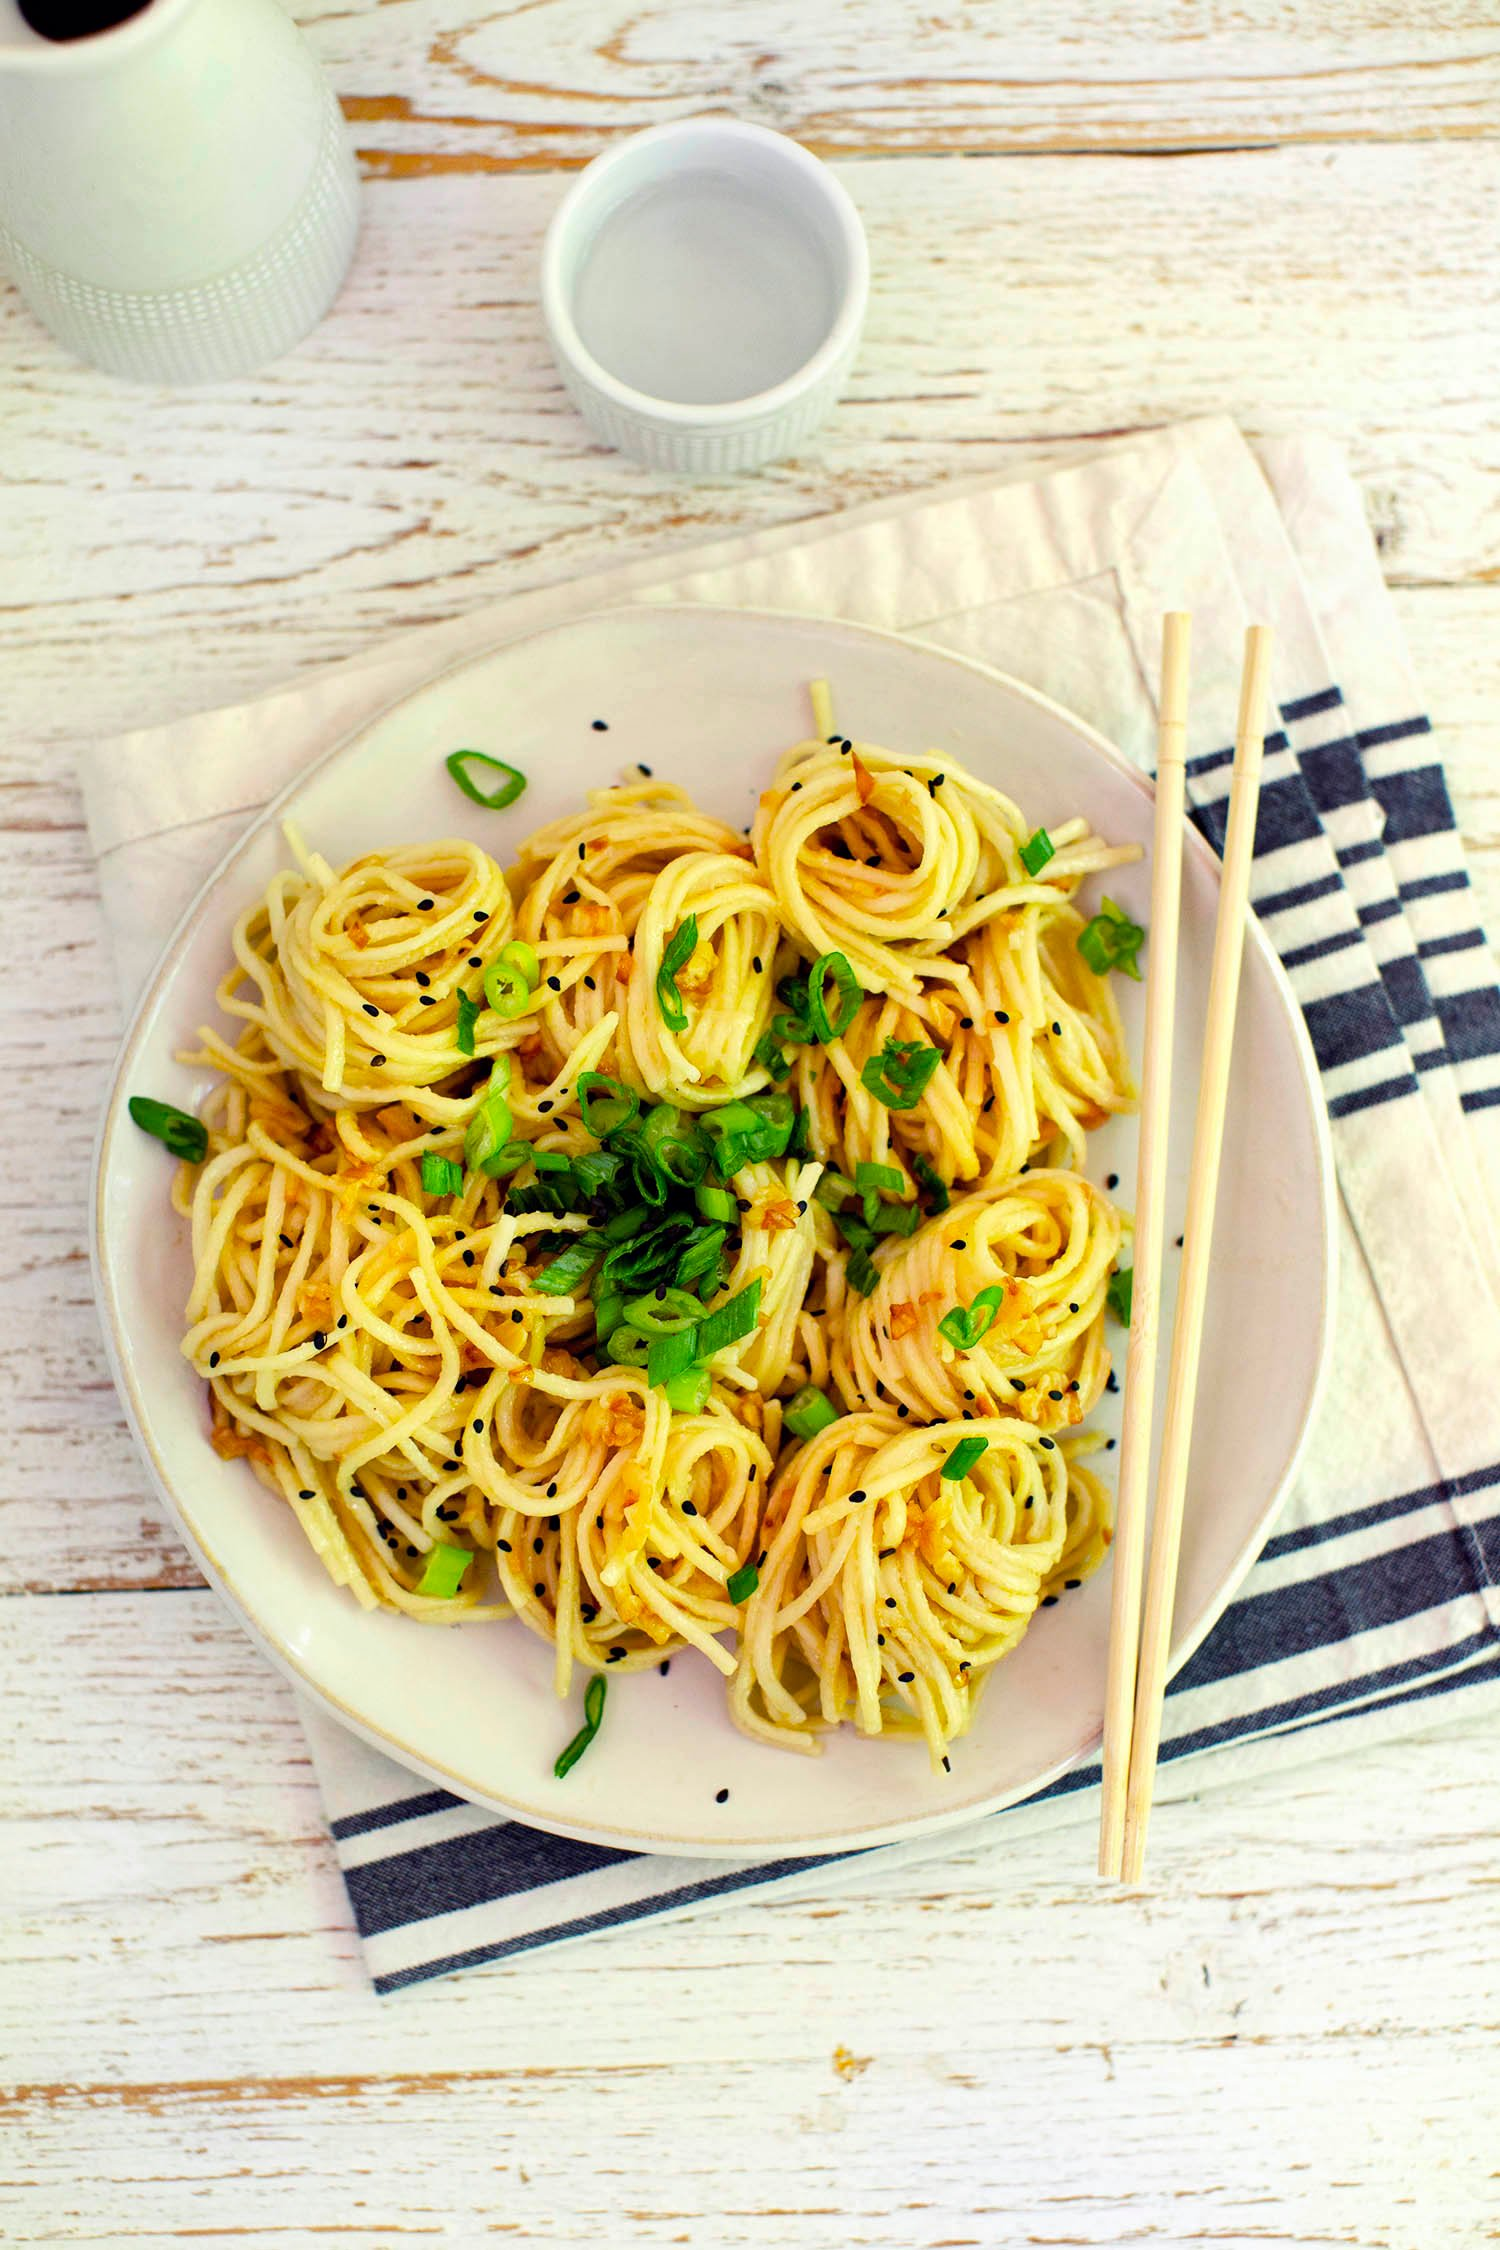 Miso and Garlic Butter Noodles